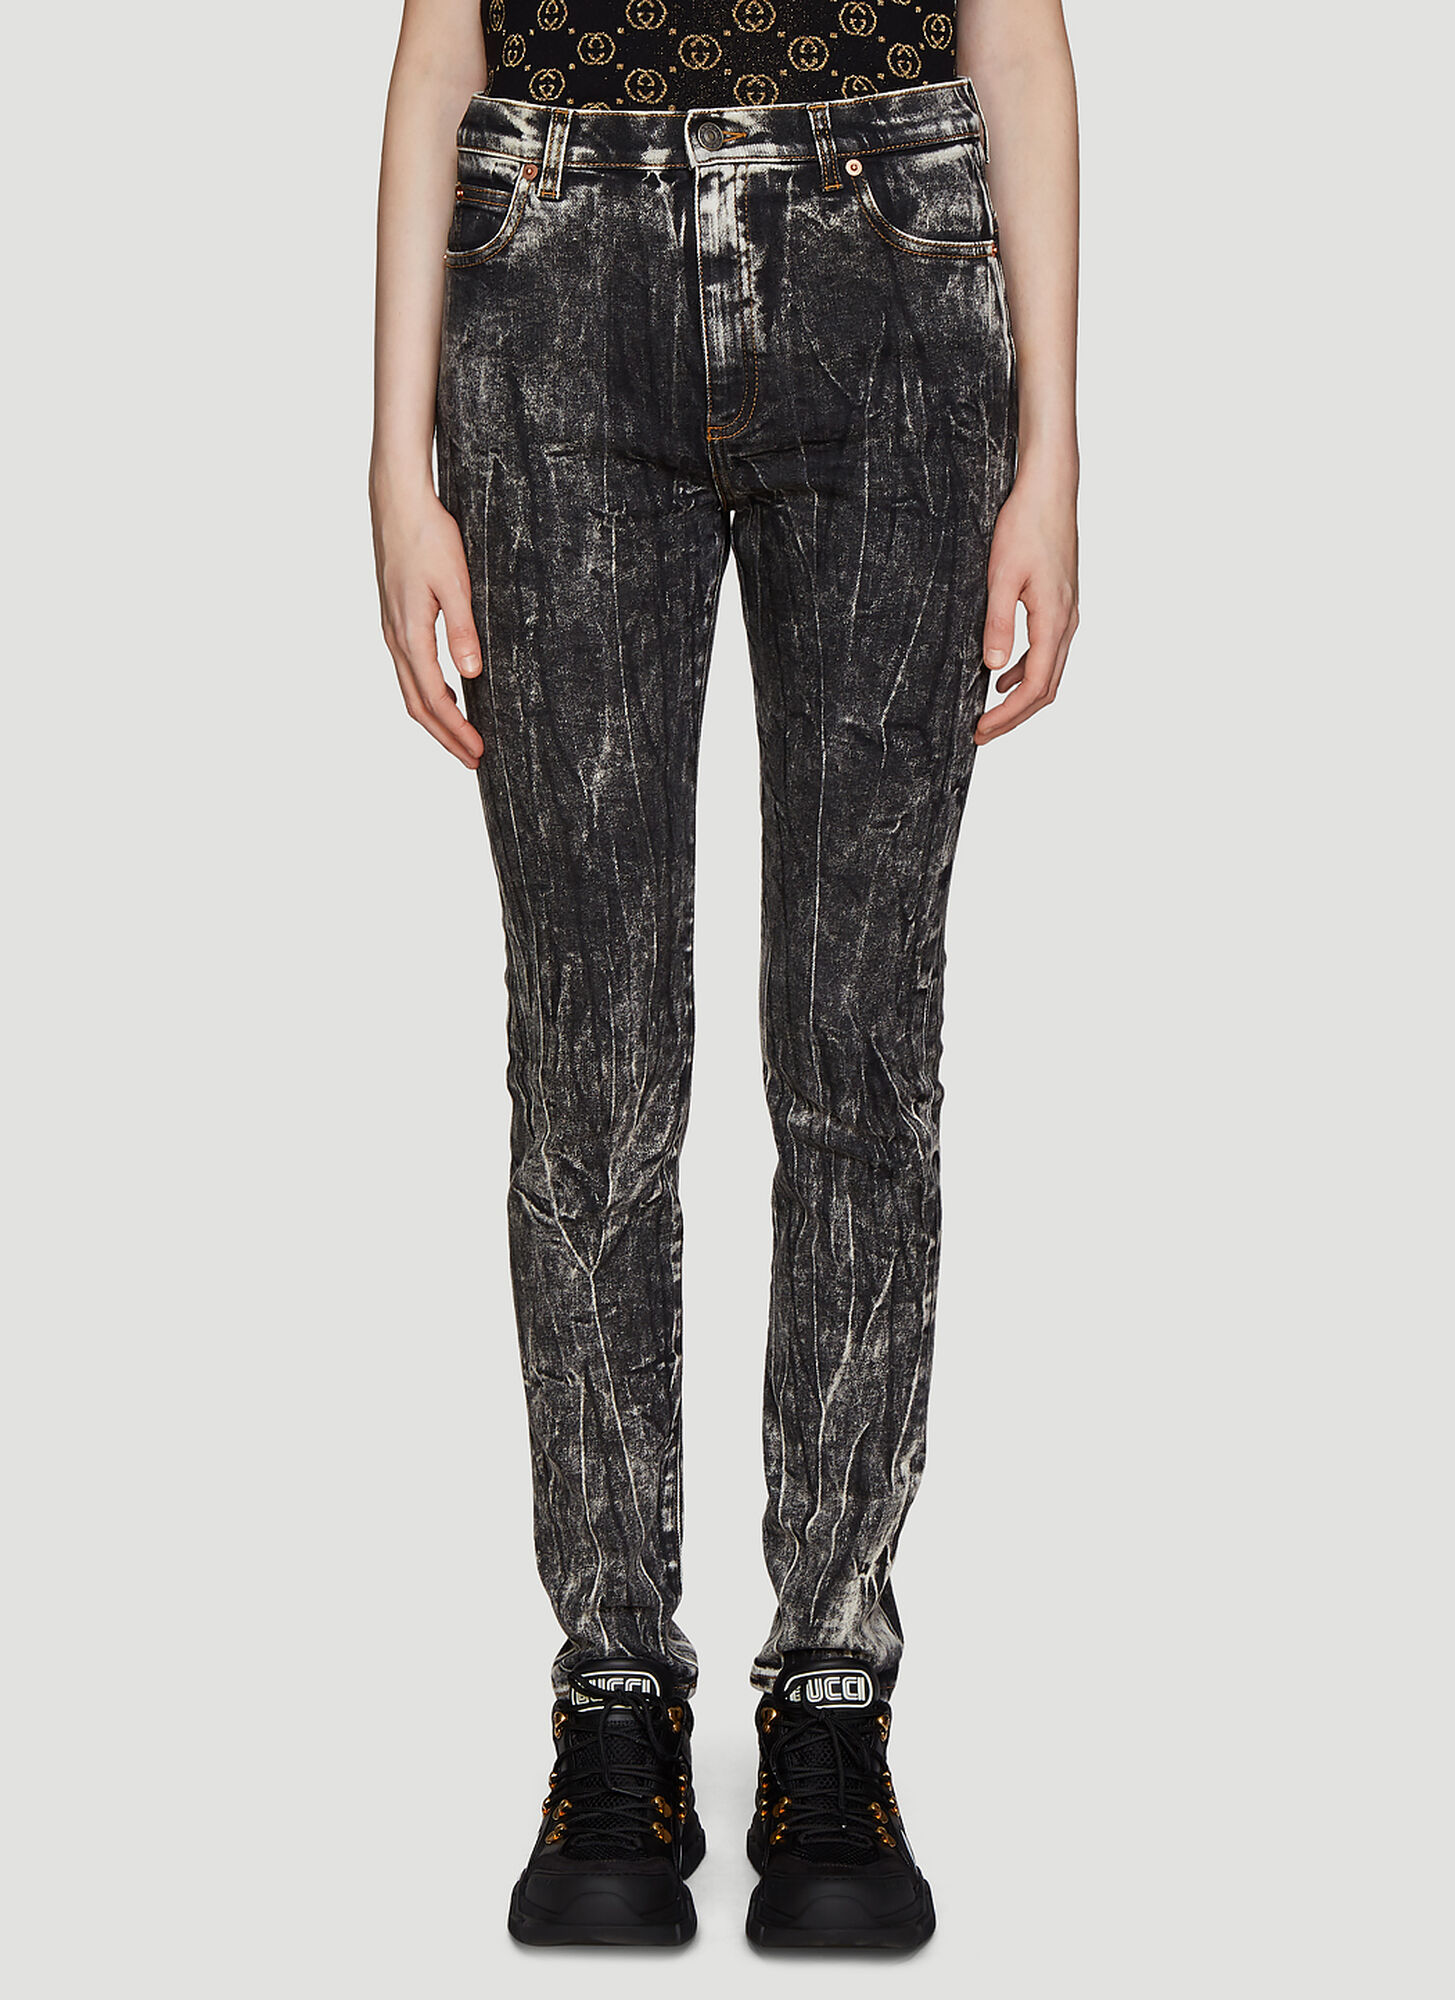 Gucci Washed Denim Jeans in Black